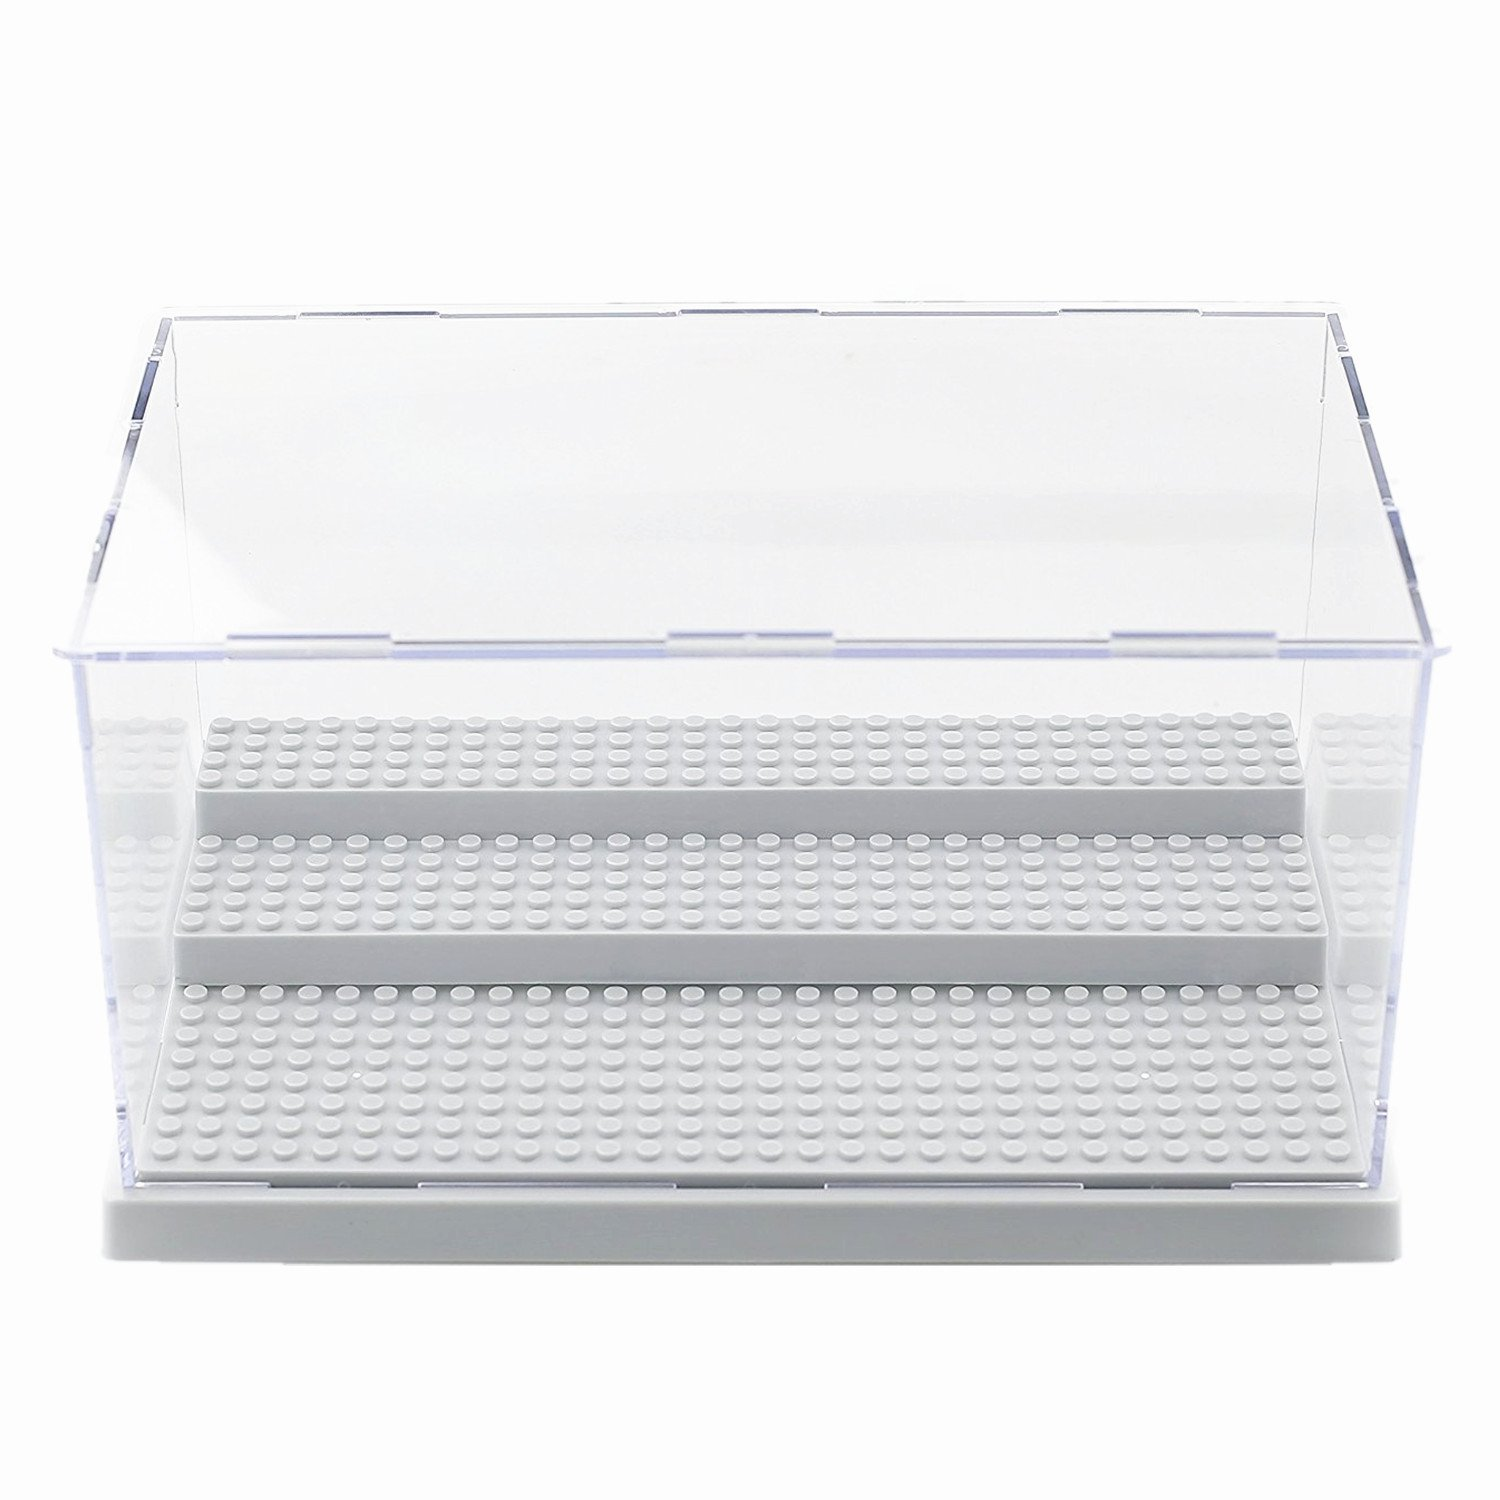 Acrylic Display Case/Box Show Case for Lego Minifigure with 3 Steps (Gray Base) VN STORE